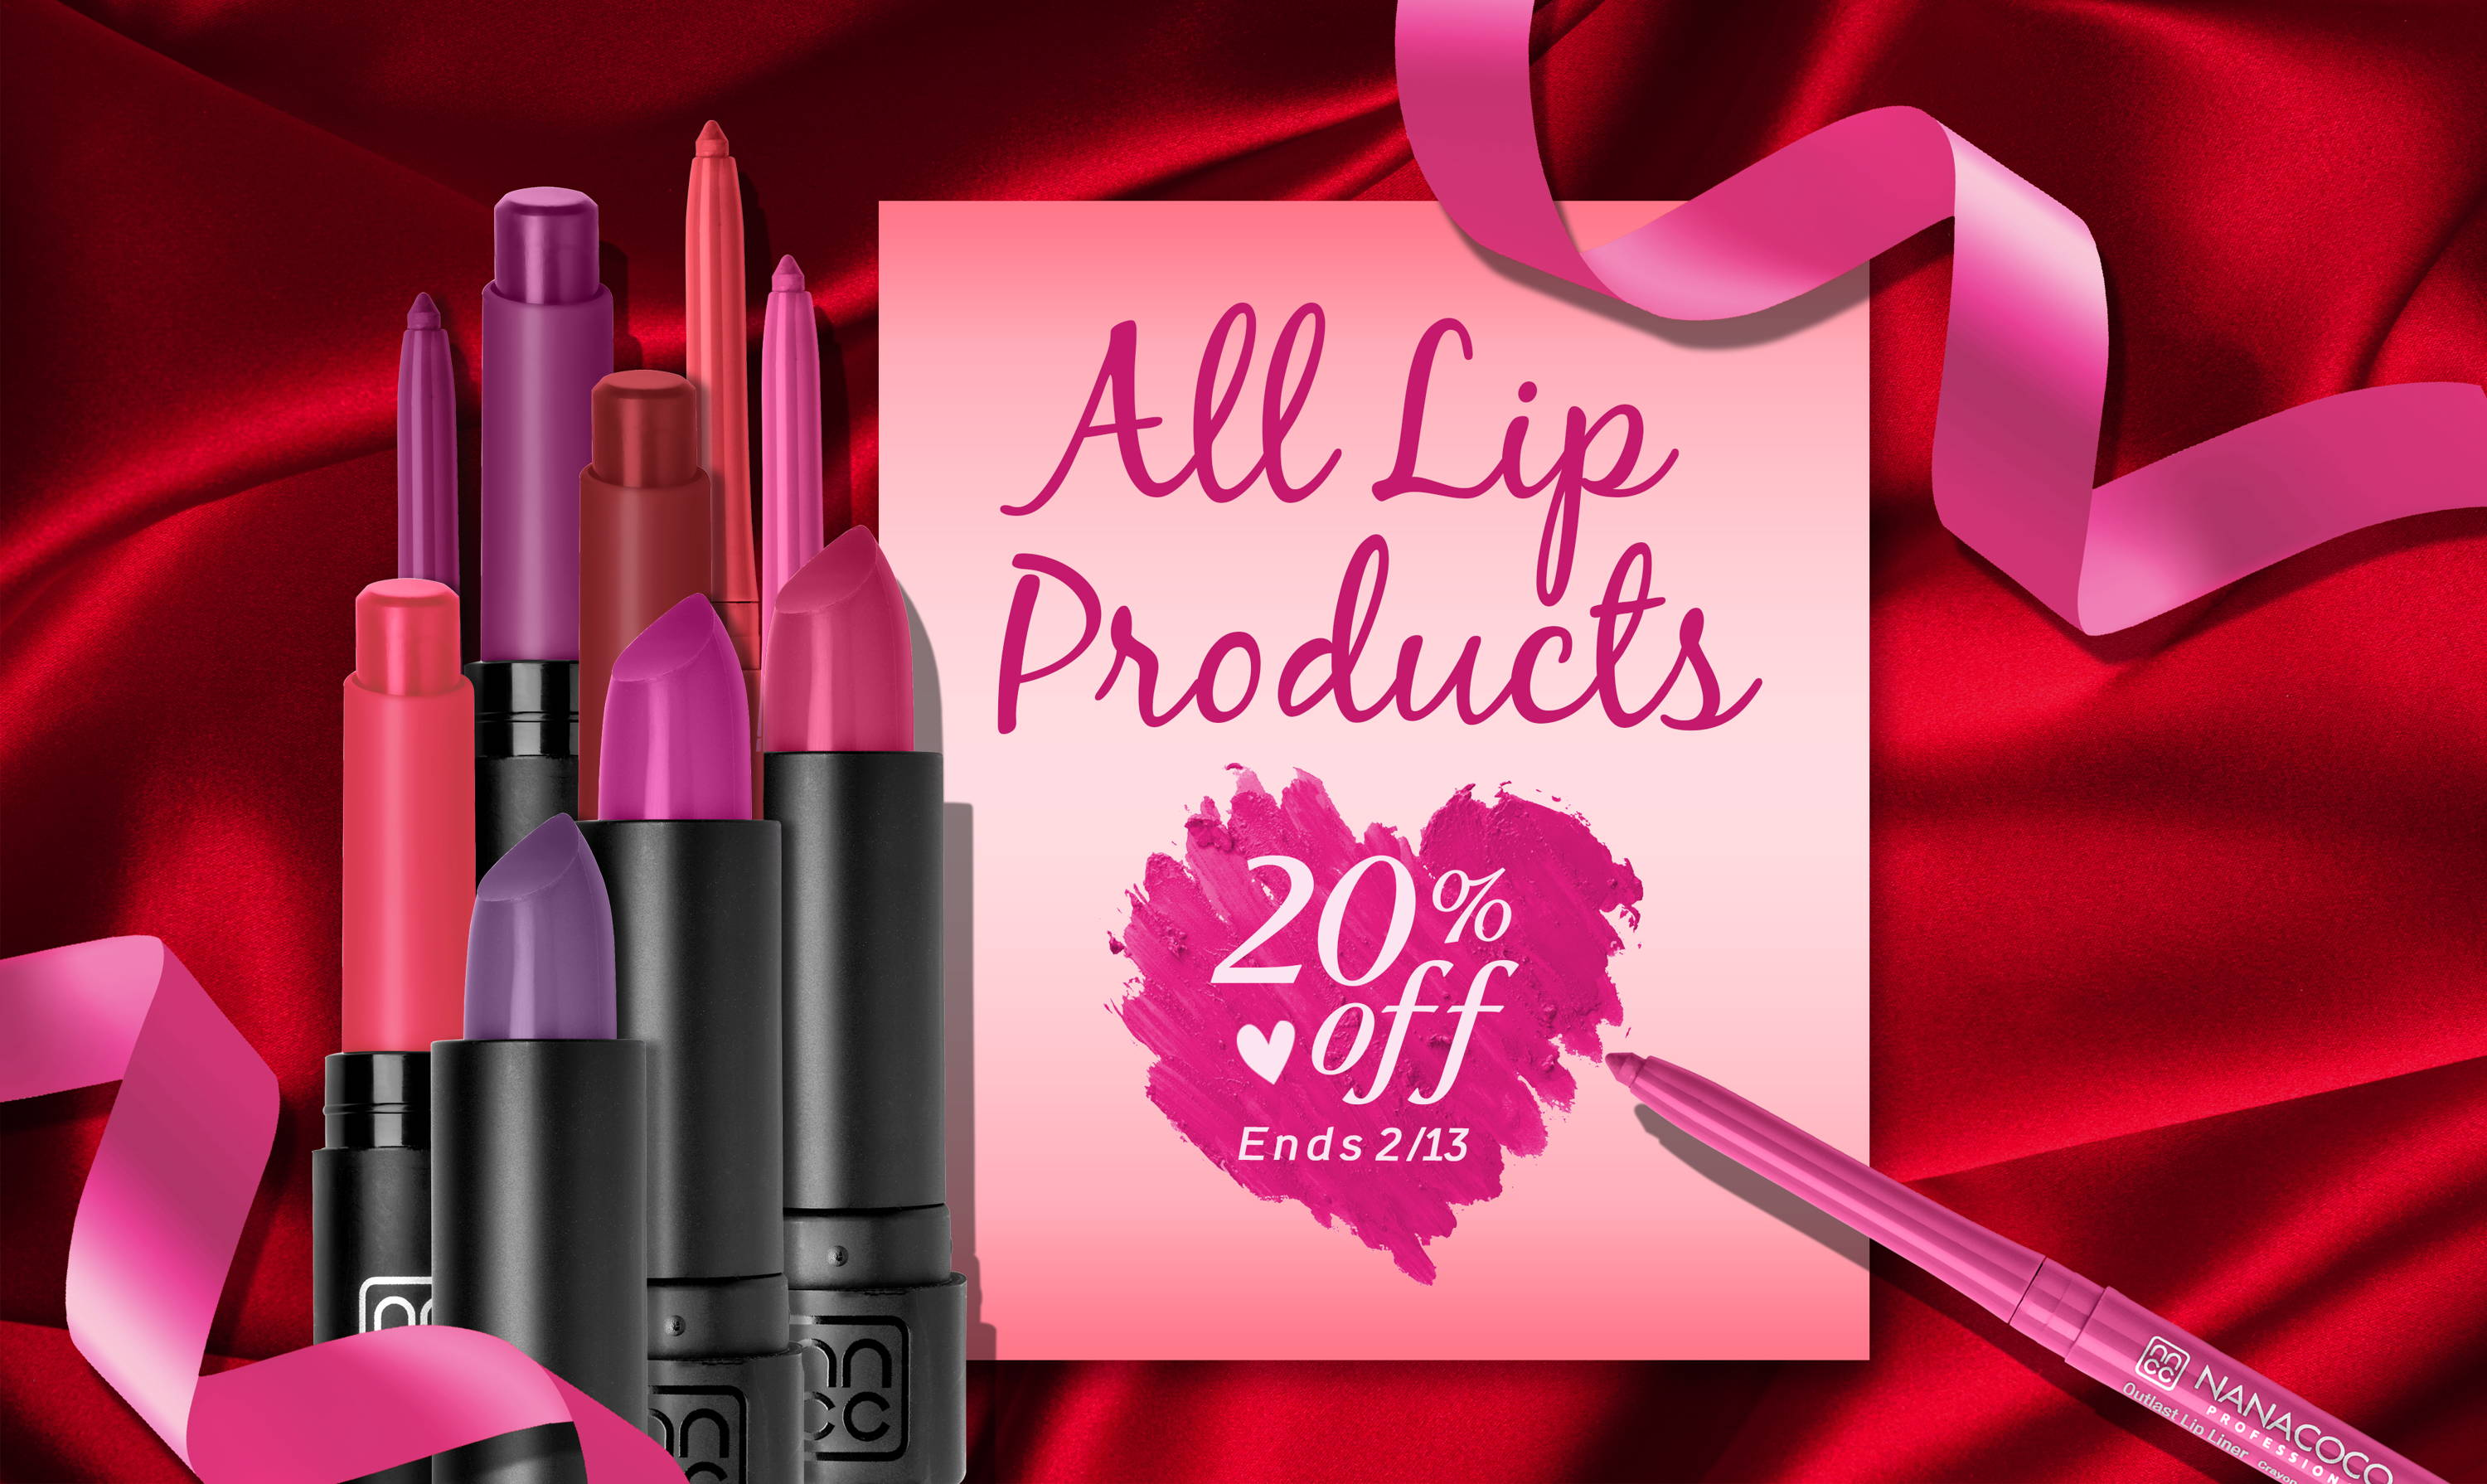 Nanacoco Professional Lip Products 20% off